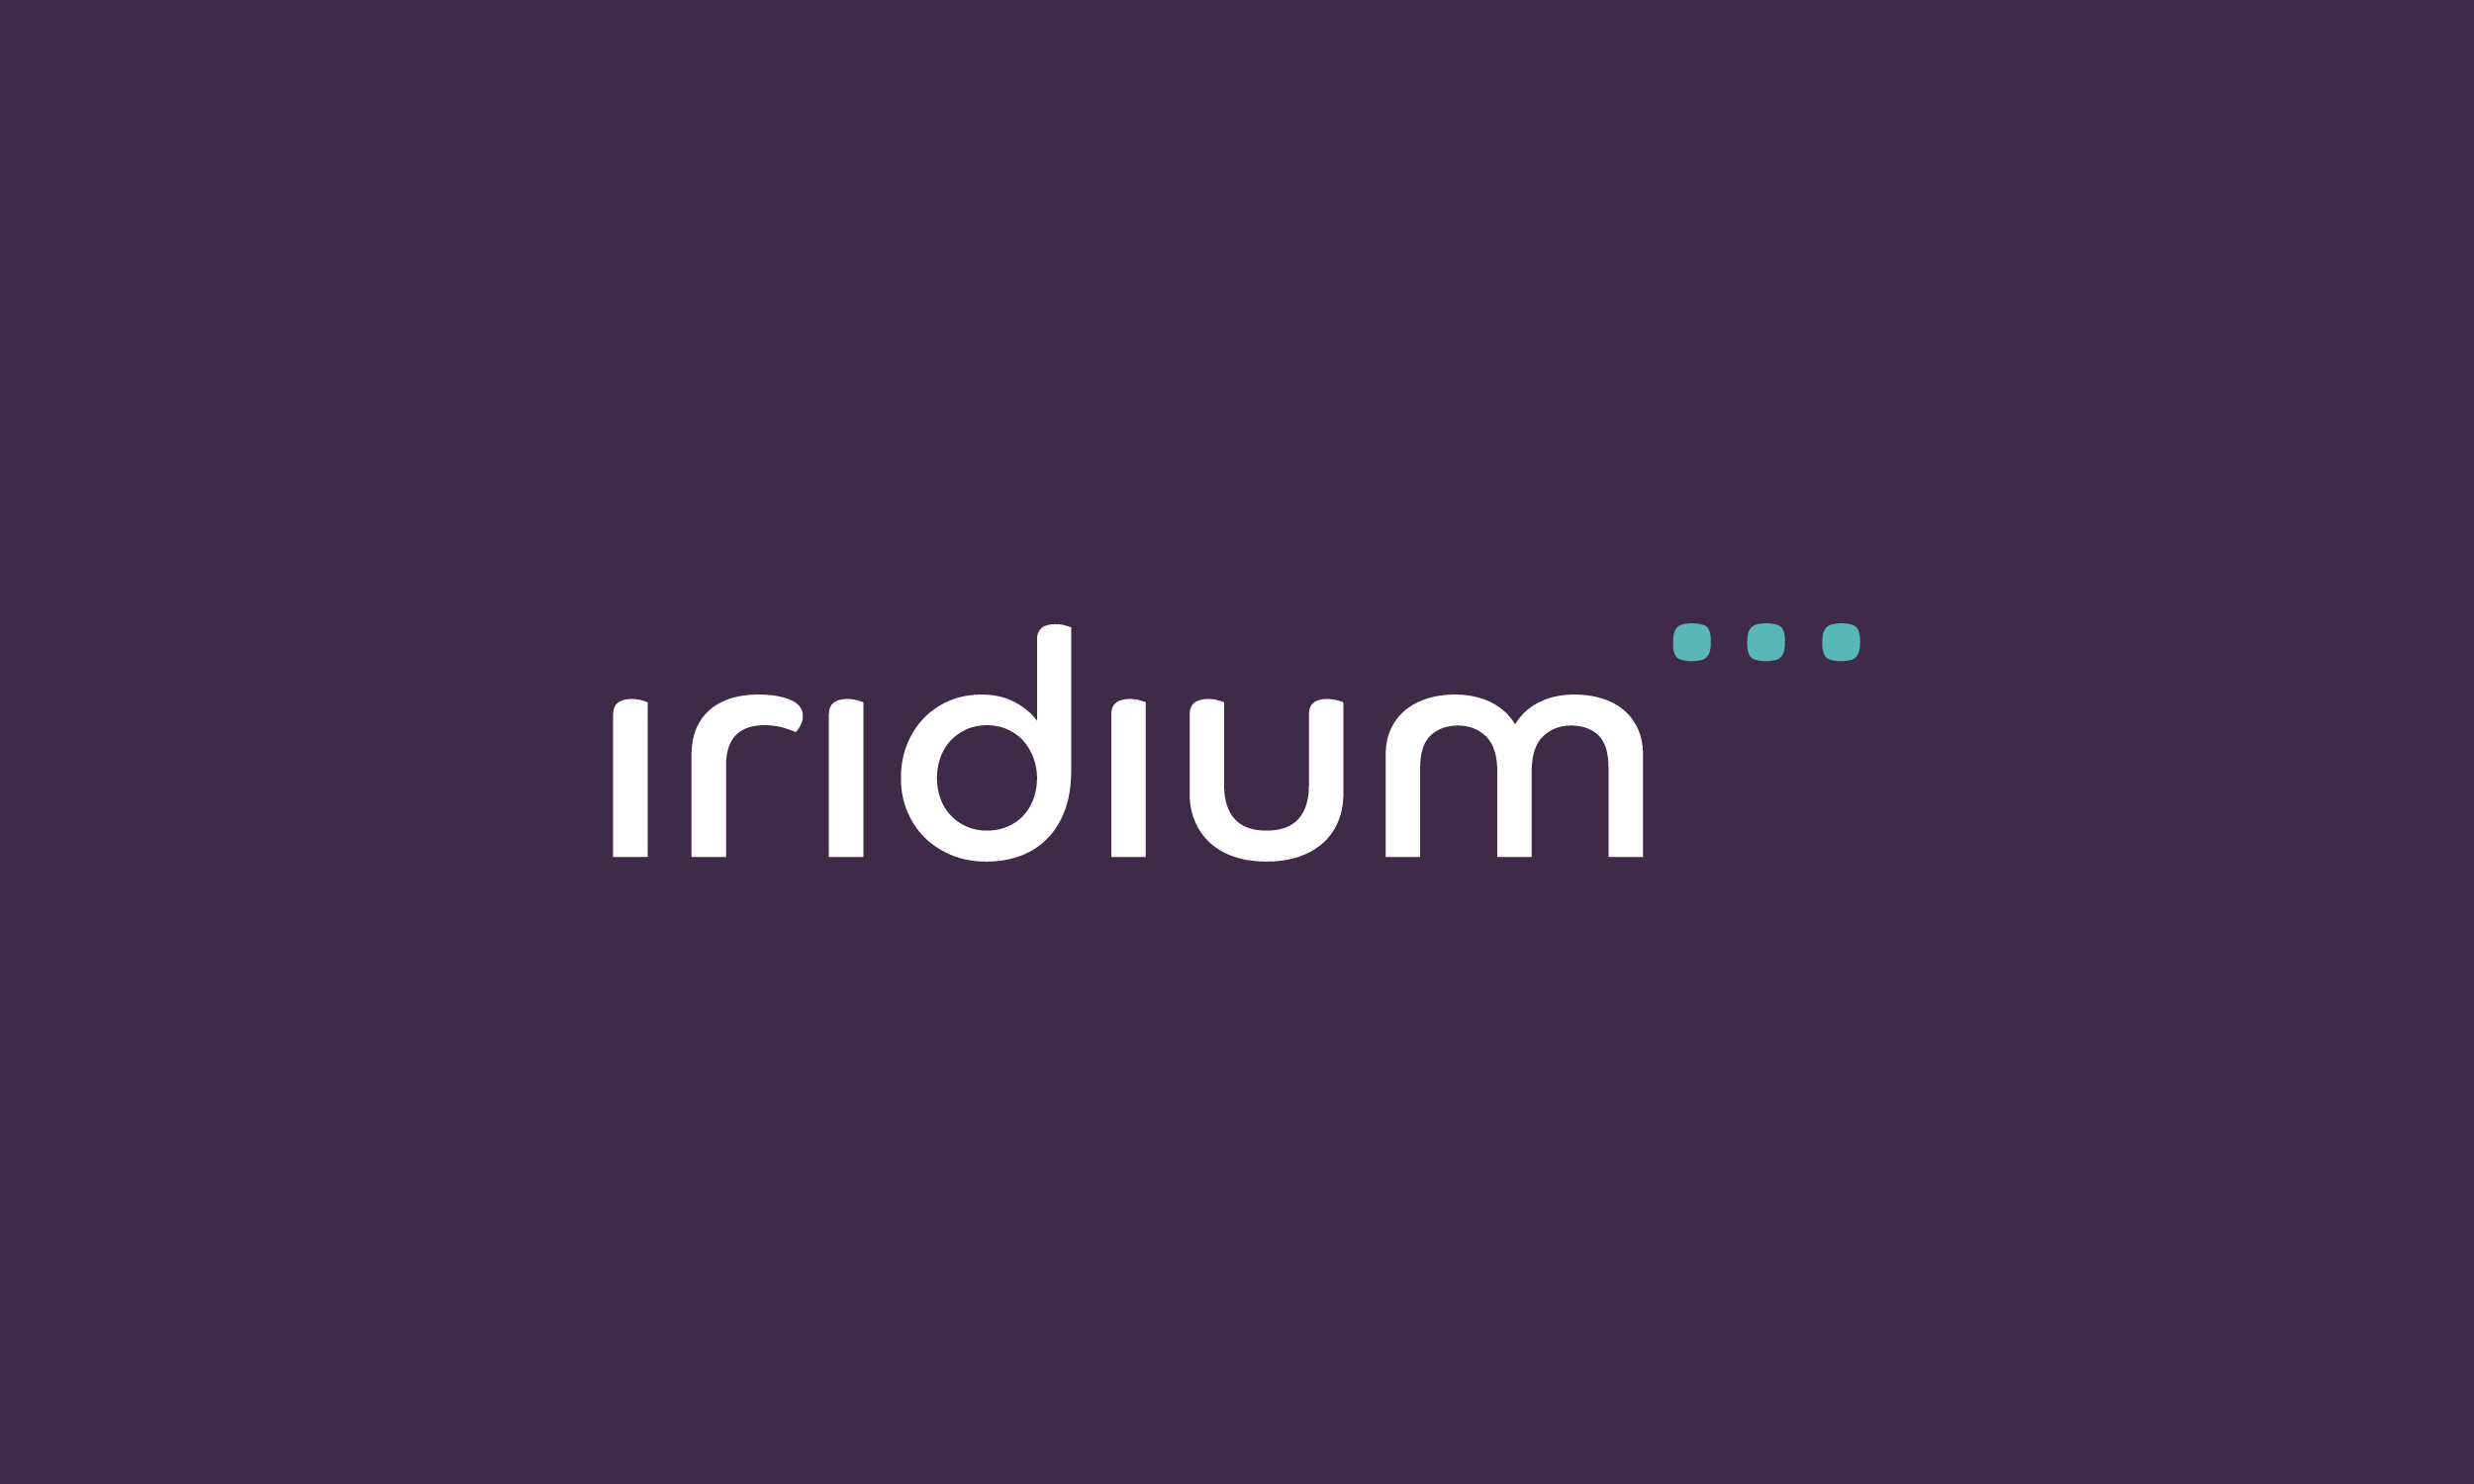 Logo Design, Brand Identity and Brand Guidelines - Iridium